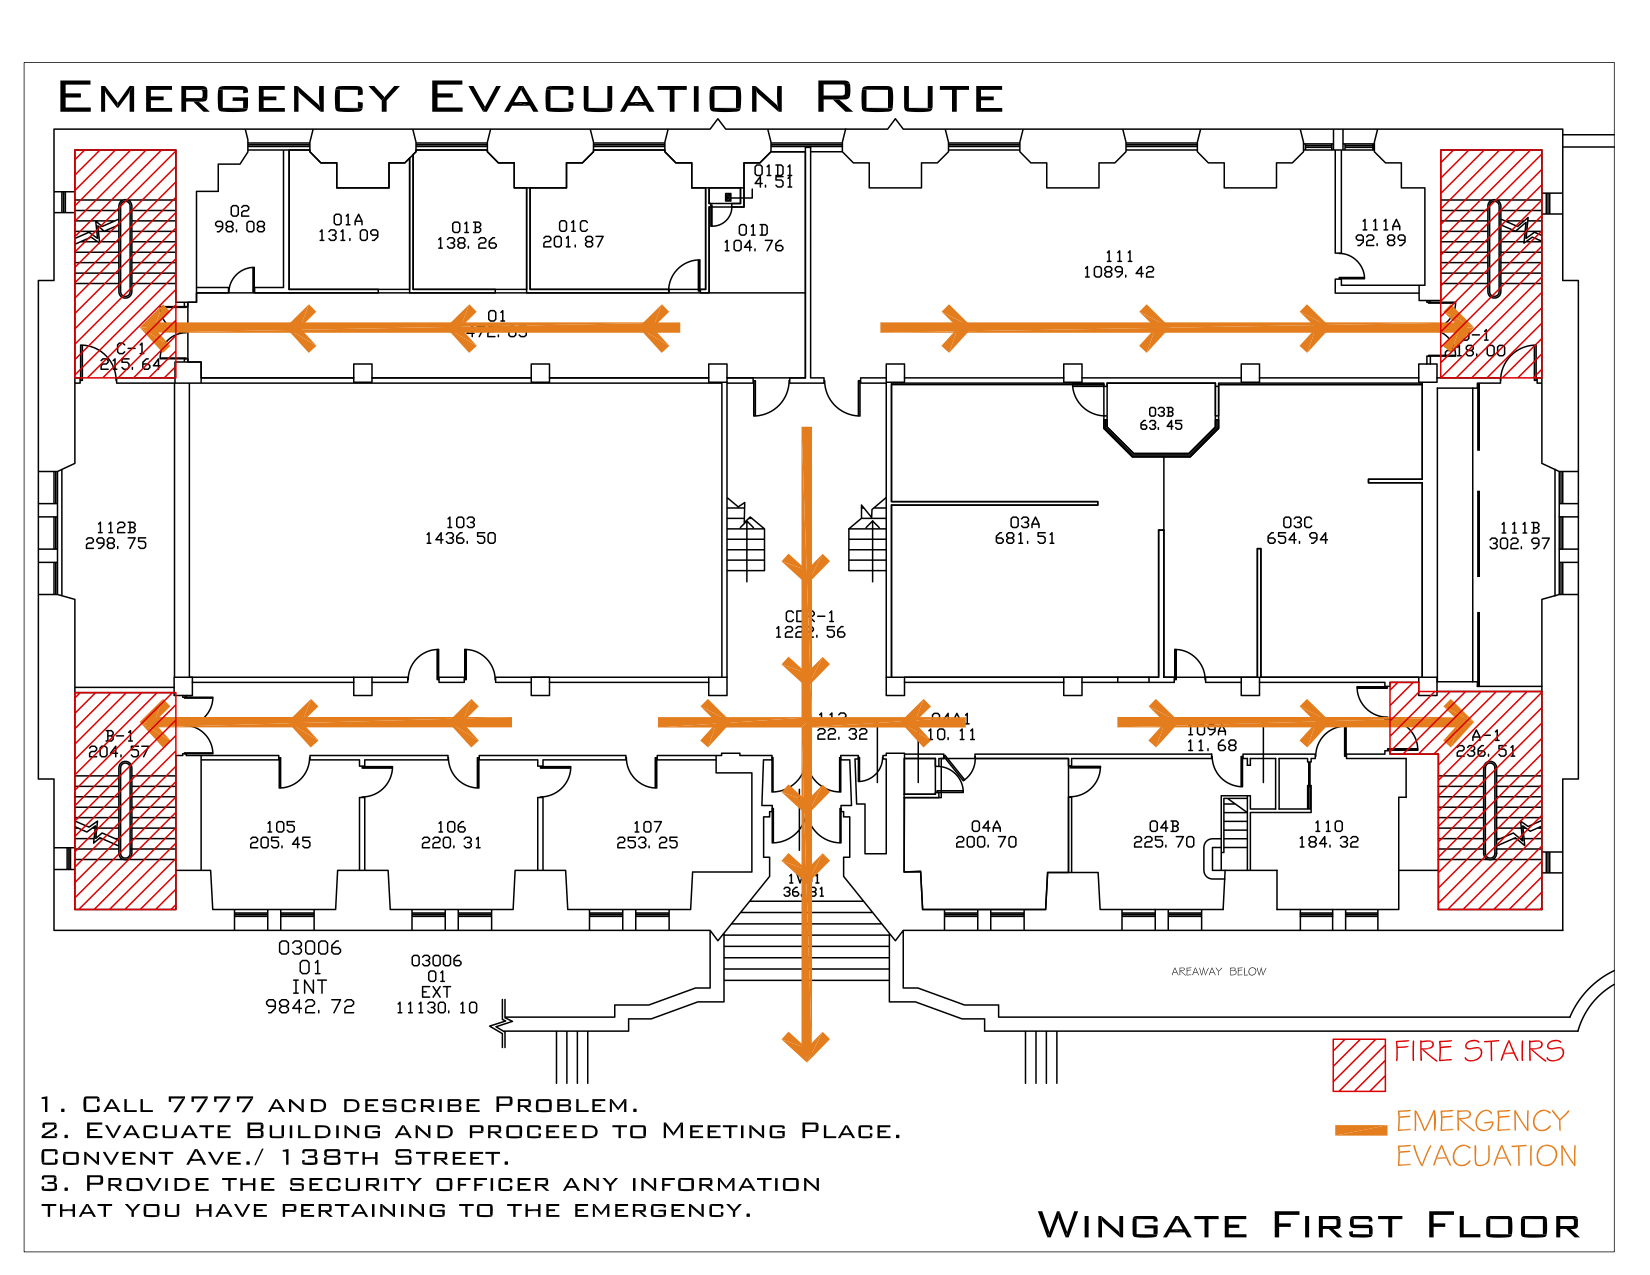 Wingate Hall - Evacuation Route 2